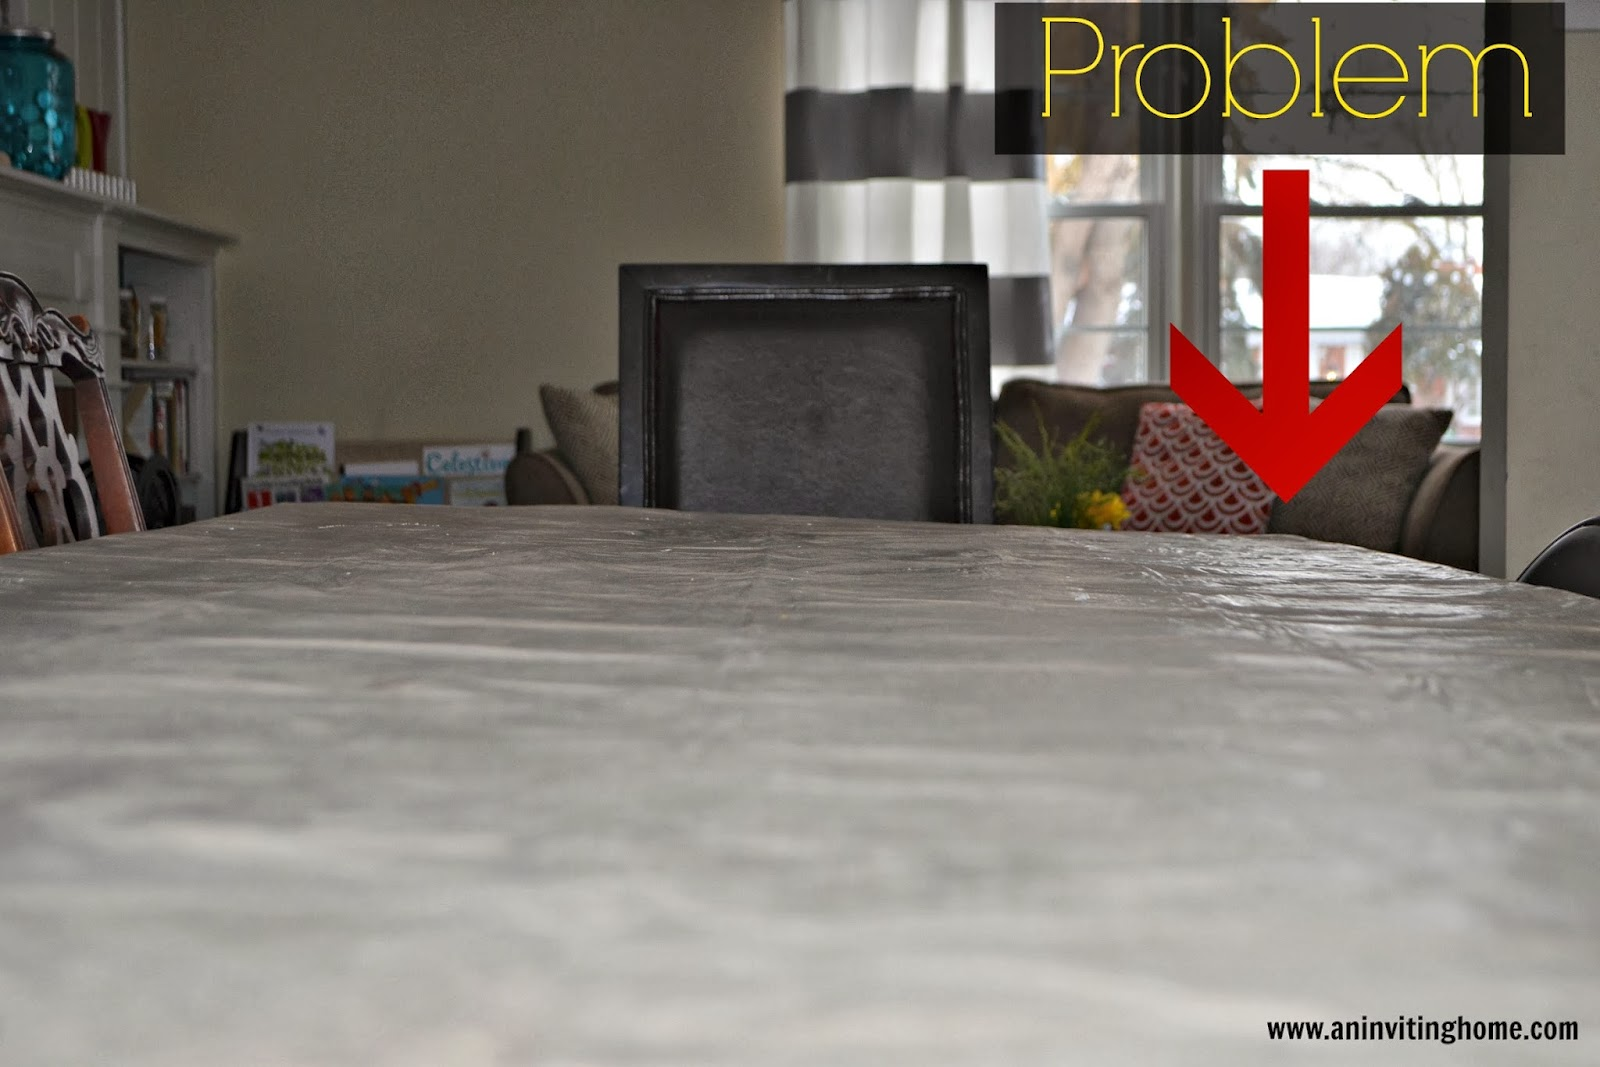 problem with the table